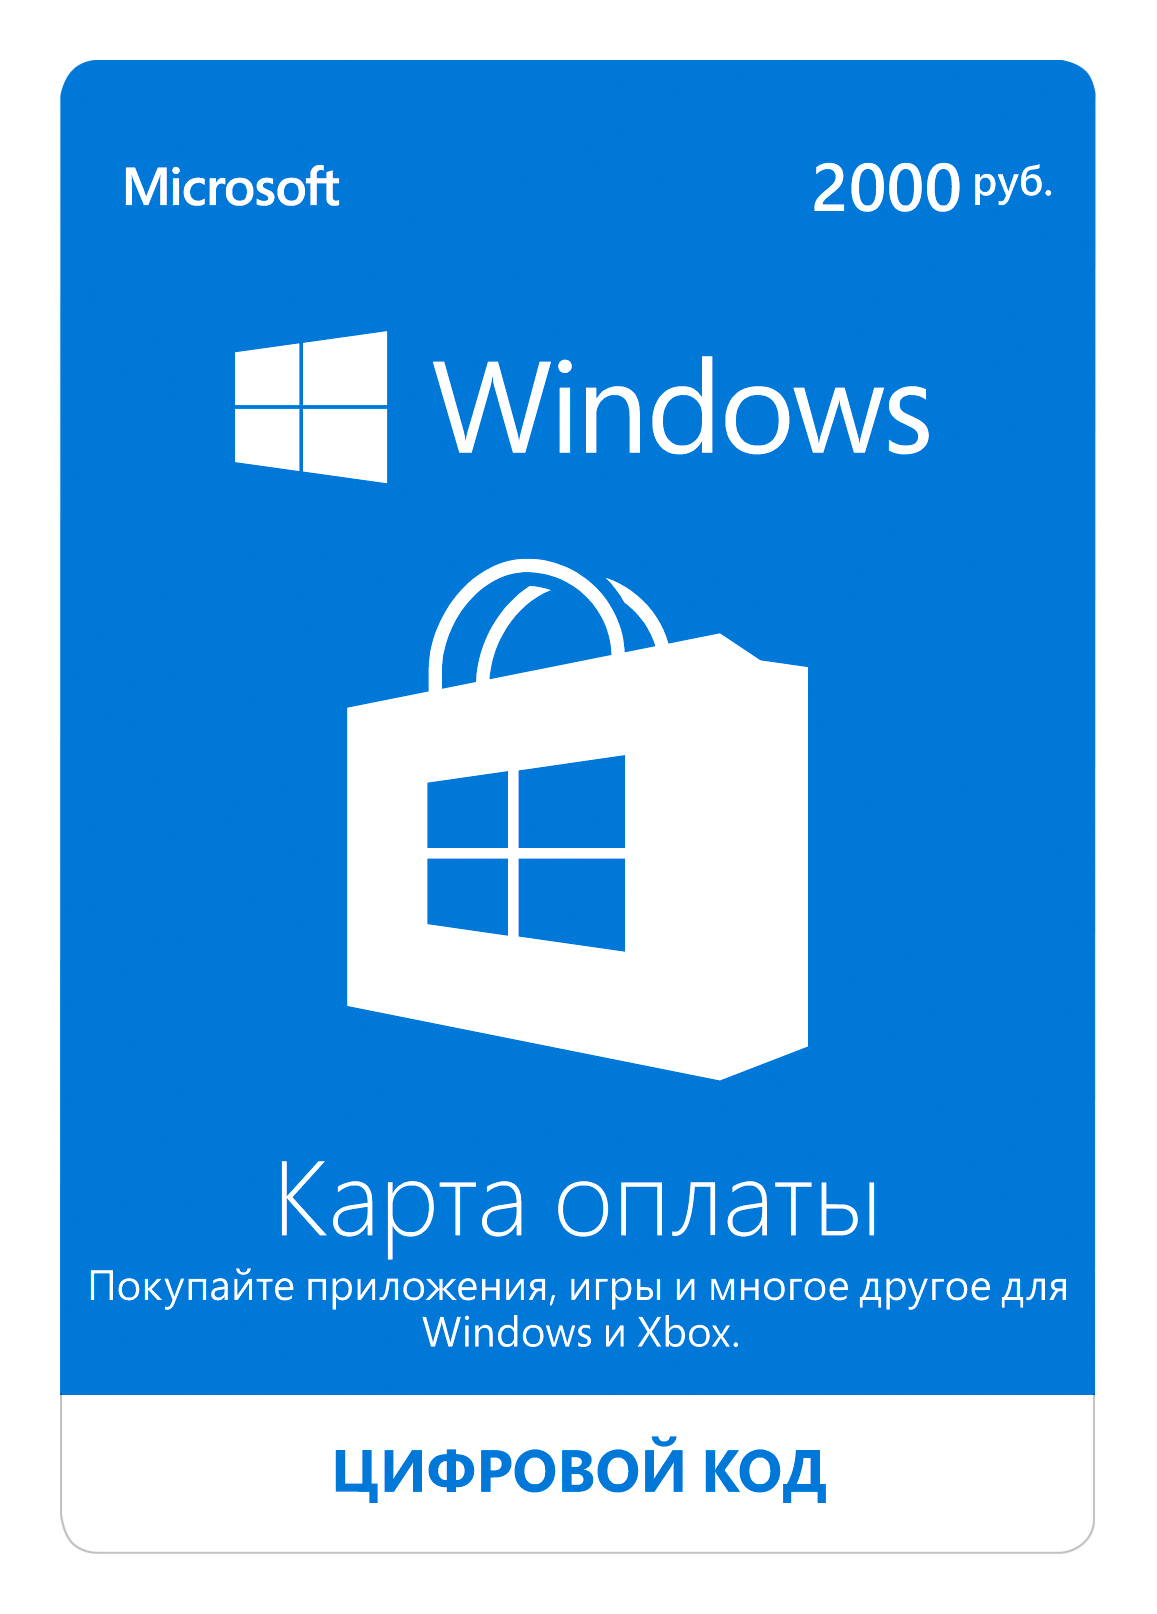 Карта оплаты Windows 2000 Руб (Store Windows/Xbox Live)